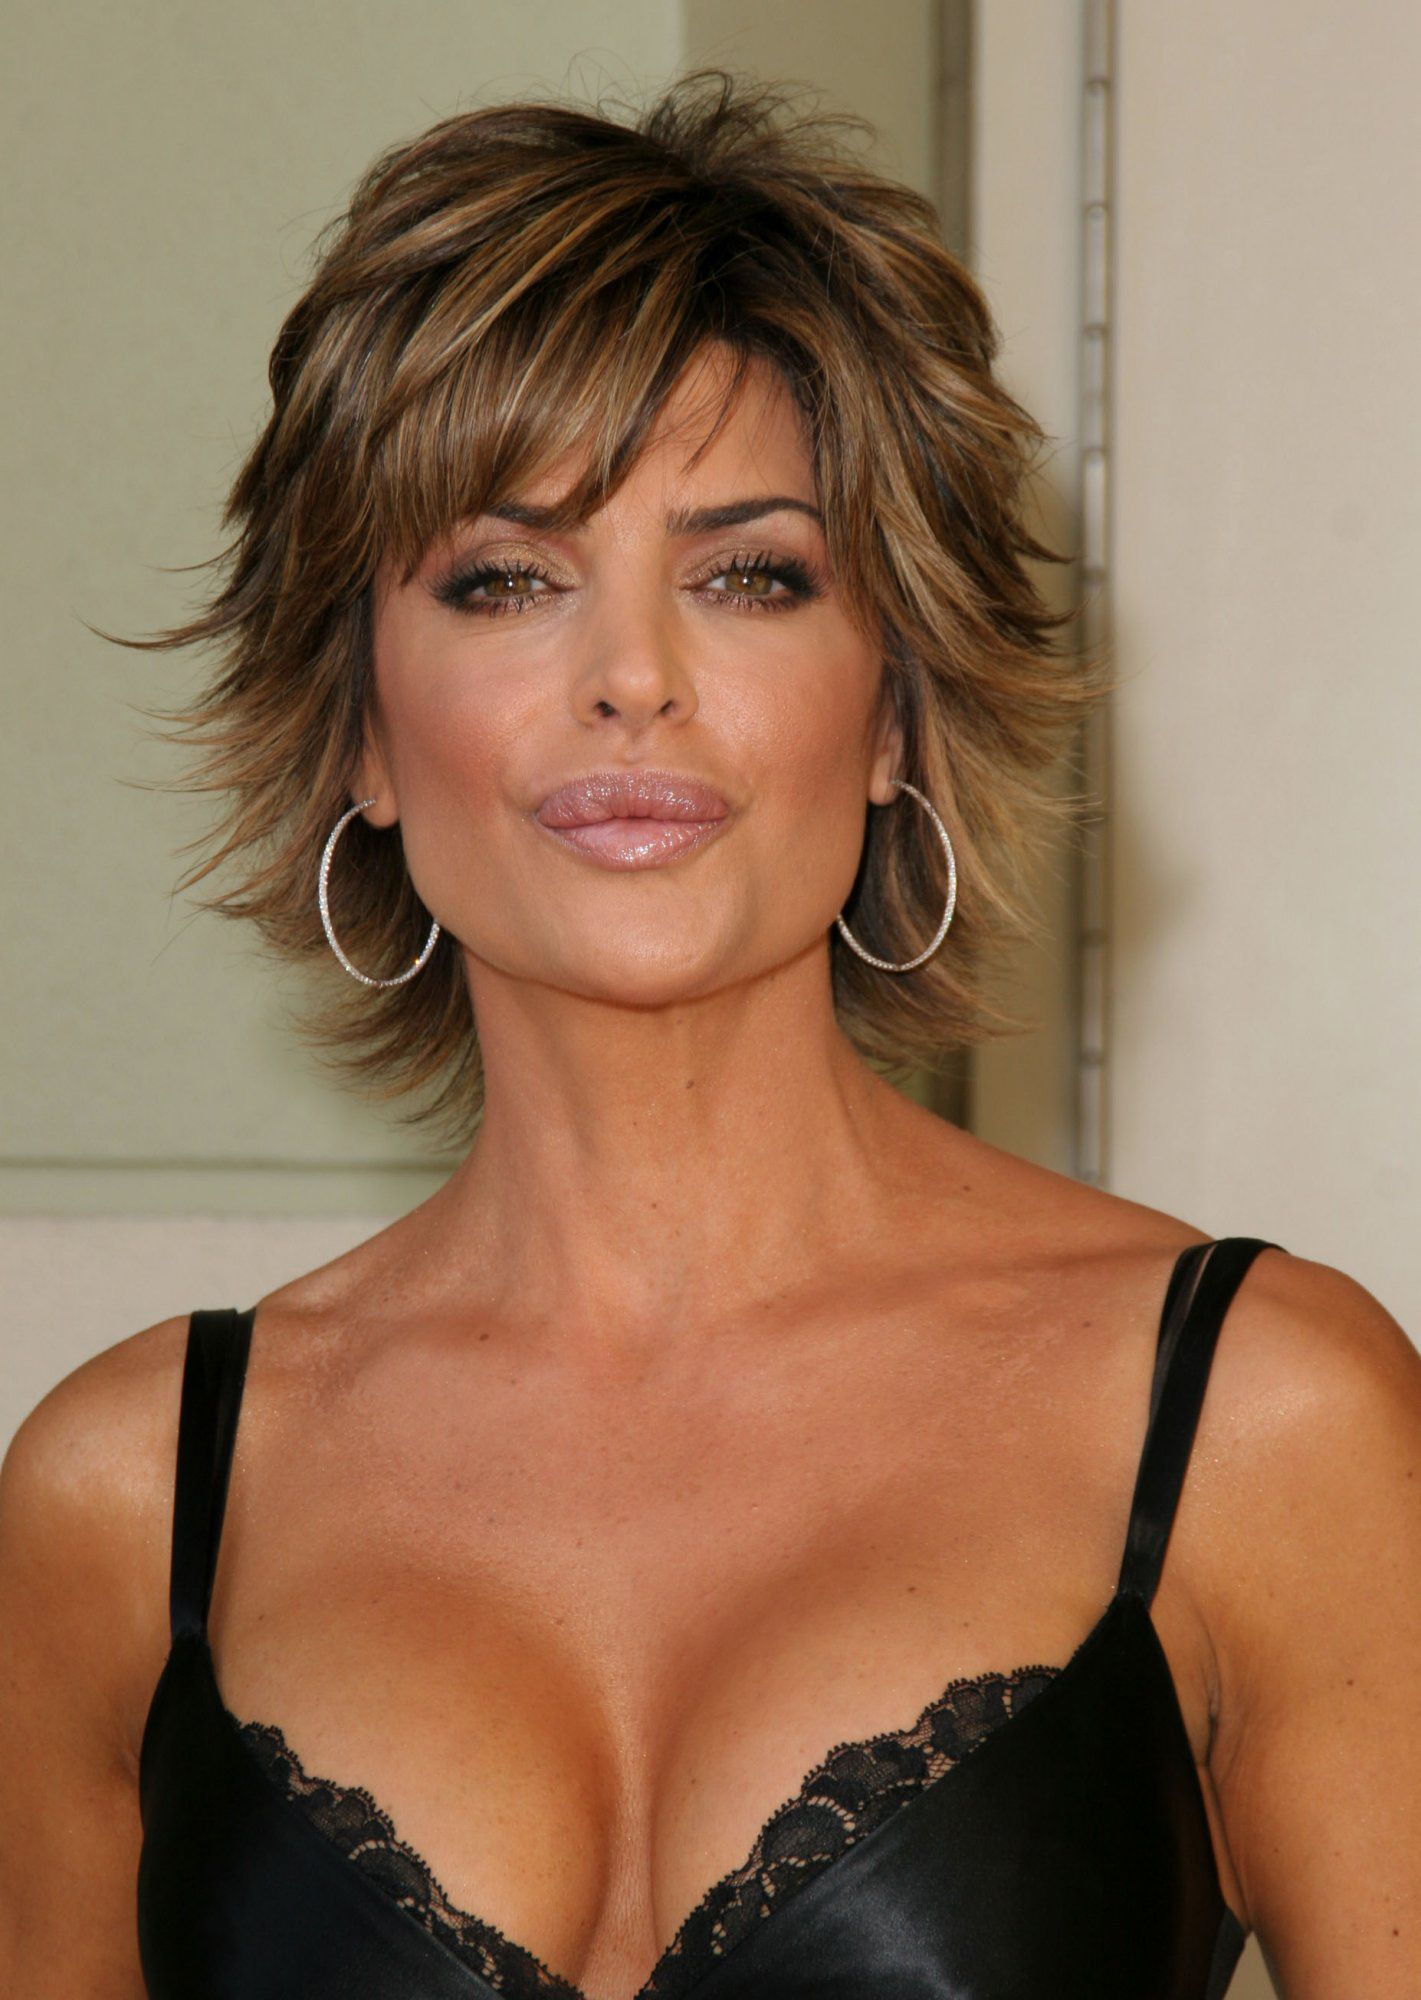 Lisa Rinna Hairstyles Image Detail For Lisa Rinna Unknown Event Black Dress Cleavage